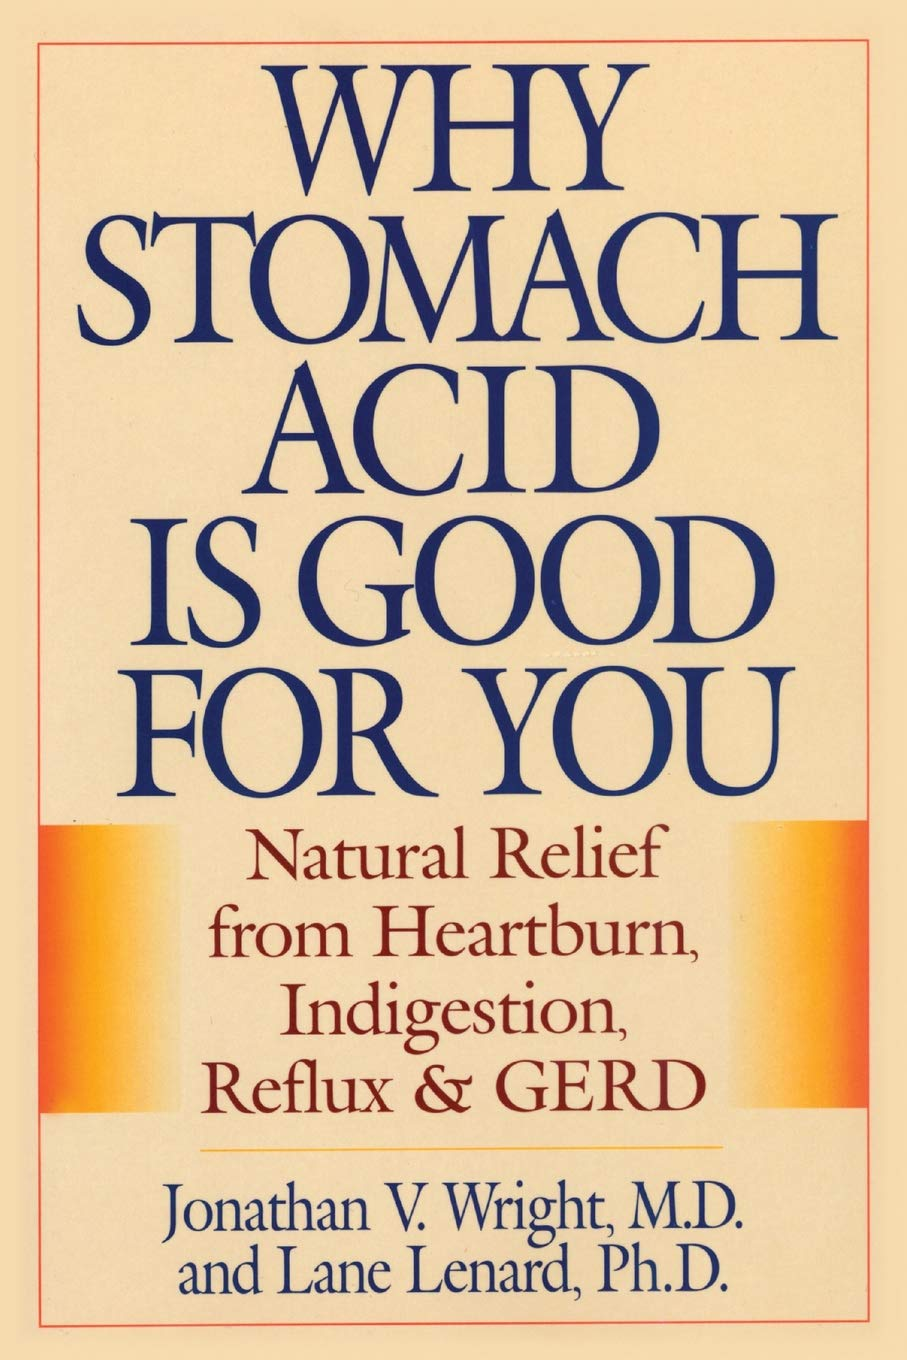 why stomach acid is good for you - by Jonathan WrightThis is a very important book. Low stomach acid is an overlooked issue when considering health challenges, and can manifest as poor digestion, low energy, low Iron, low B-12, hypothyroidism, bloating after eating, depression, tendencies to get colds and flus… Don't miss this book! It is one of my favorite resources on digestion and health! – David Rainoshek, M.A., Juice Feasting